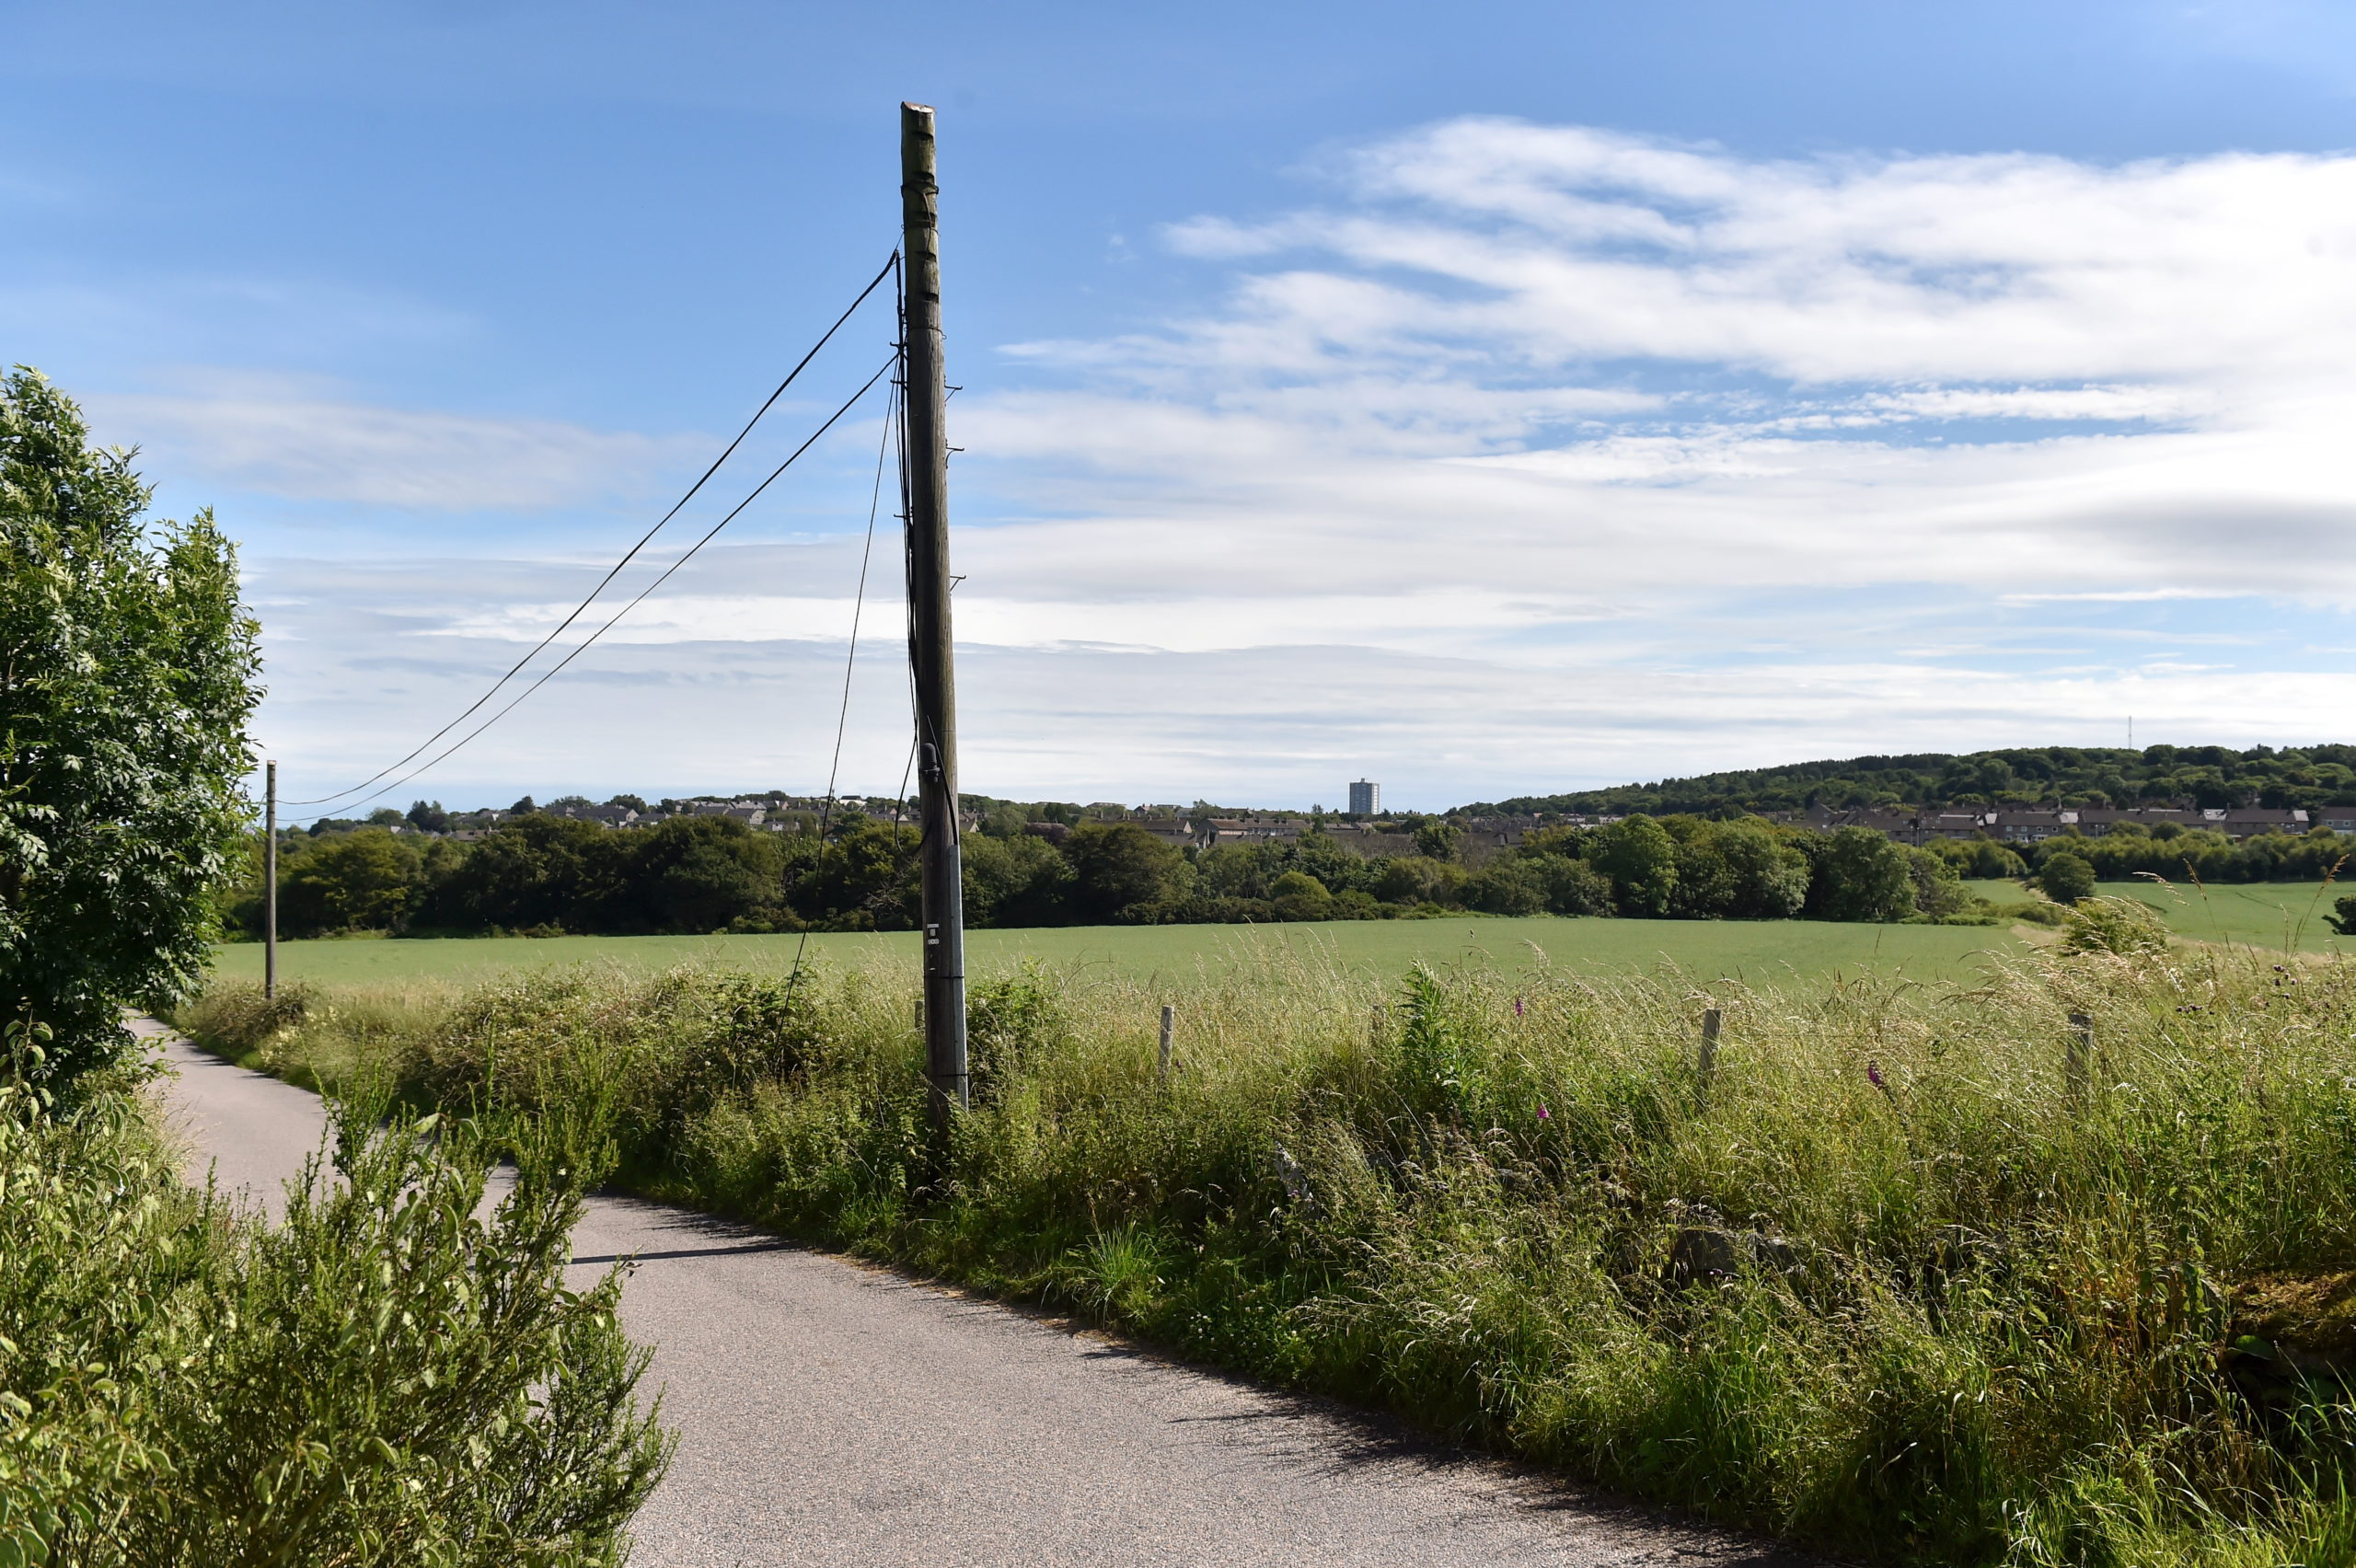 Looking towards the contentious development site on the border of Aberdeen and Aberdeensire.